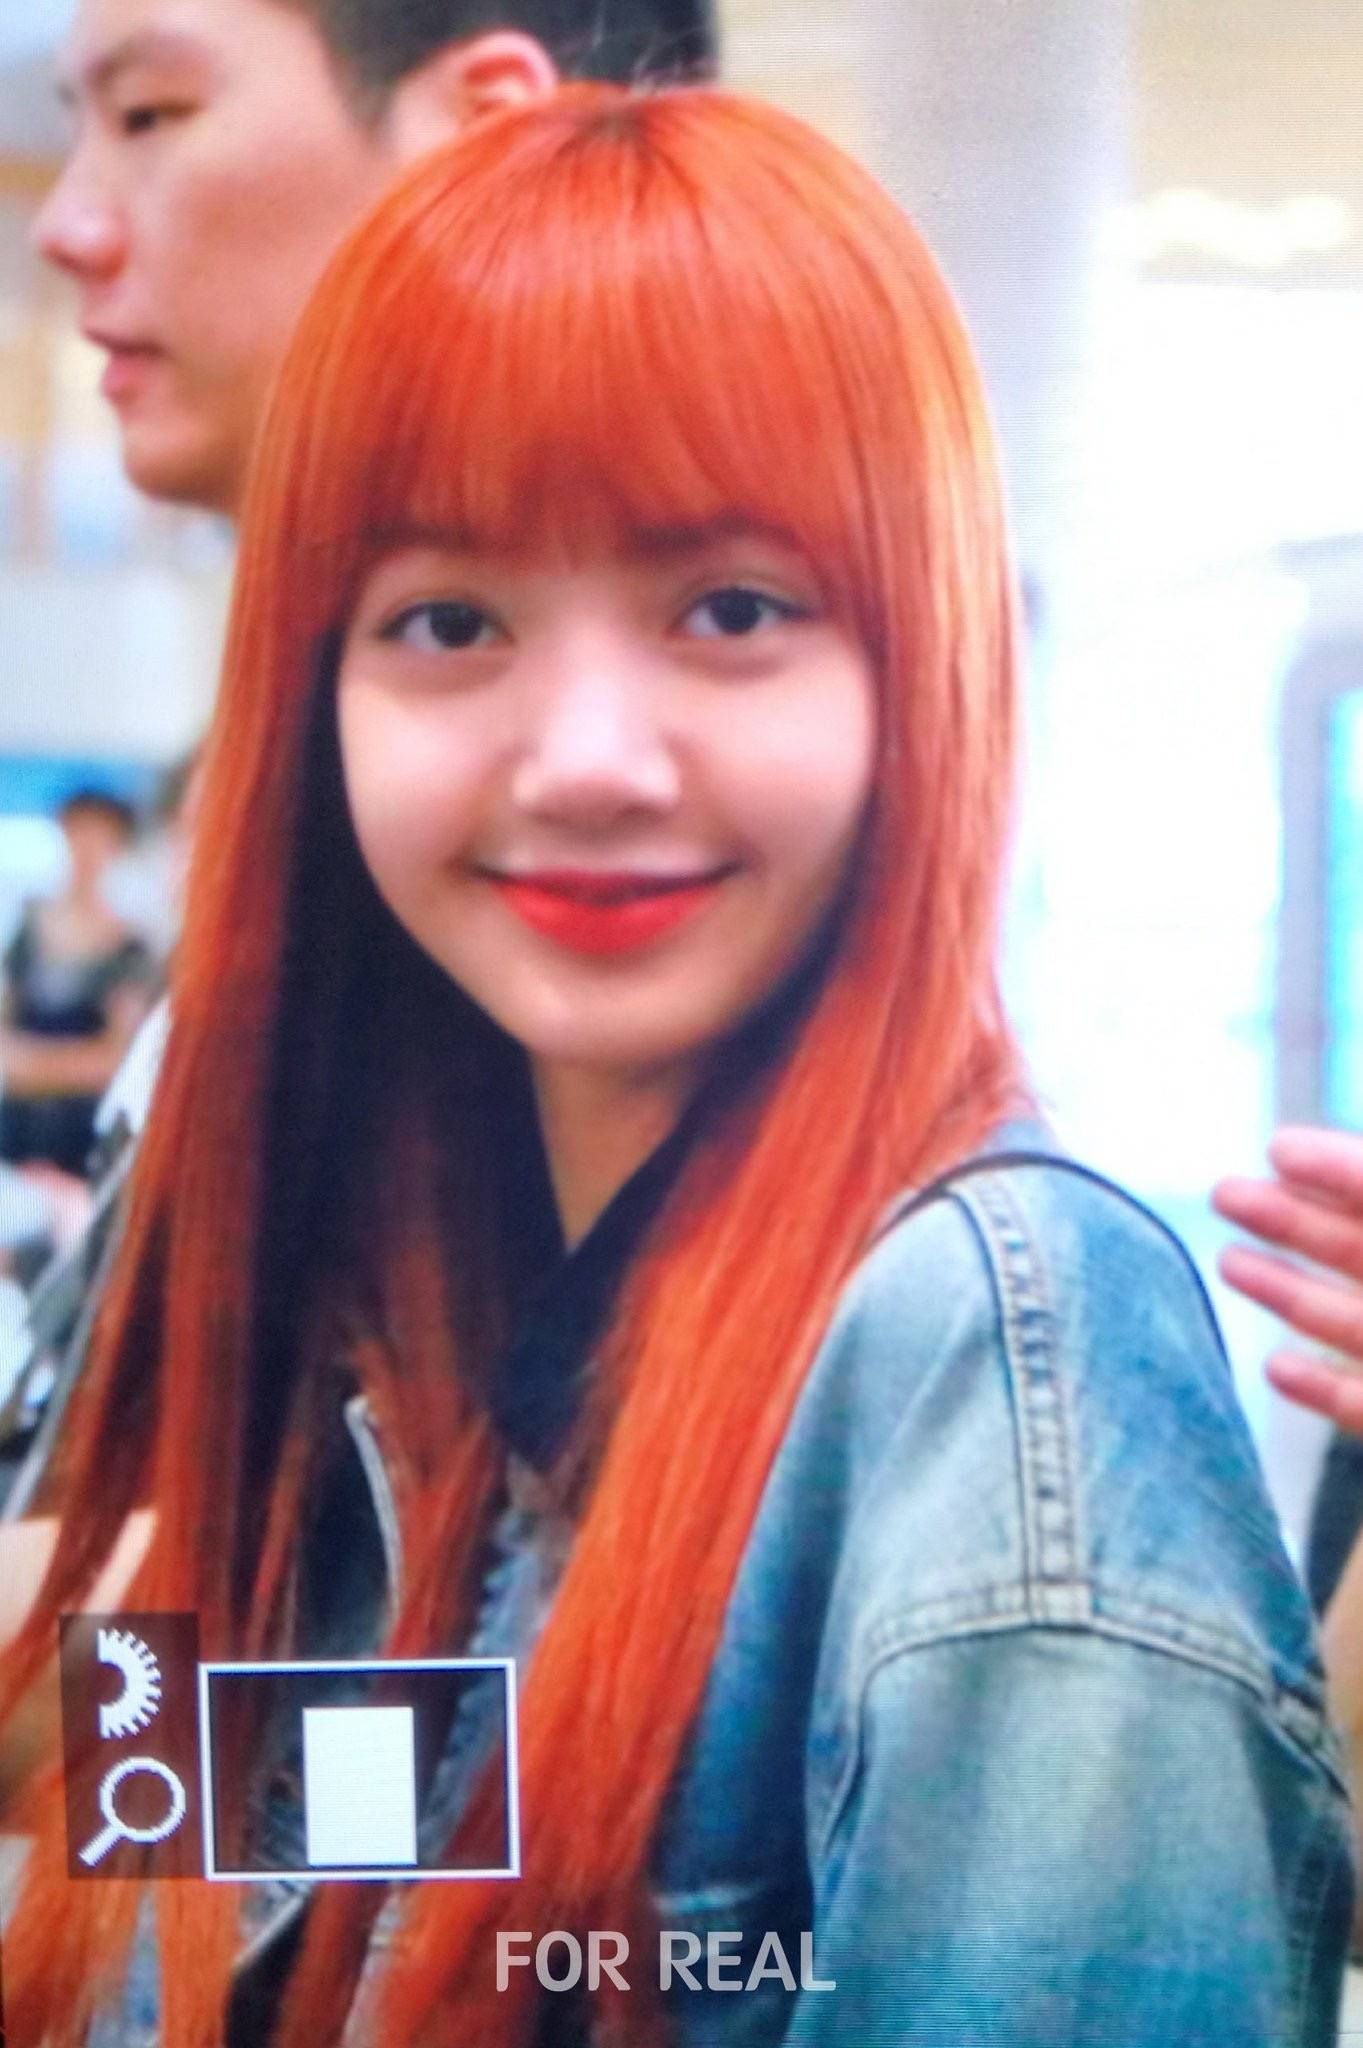 Pin By Jongkaisus On Blackpink Pinterest Blackpink Lisa Lisa